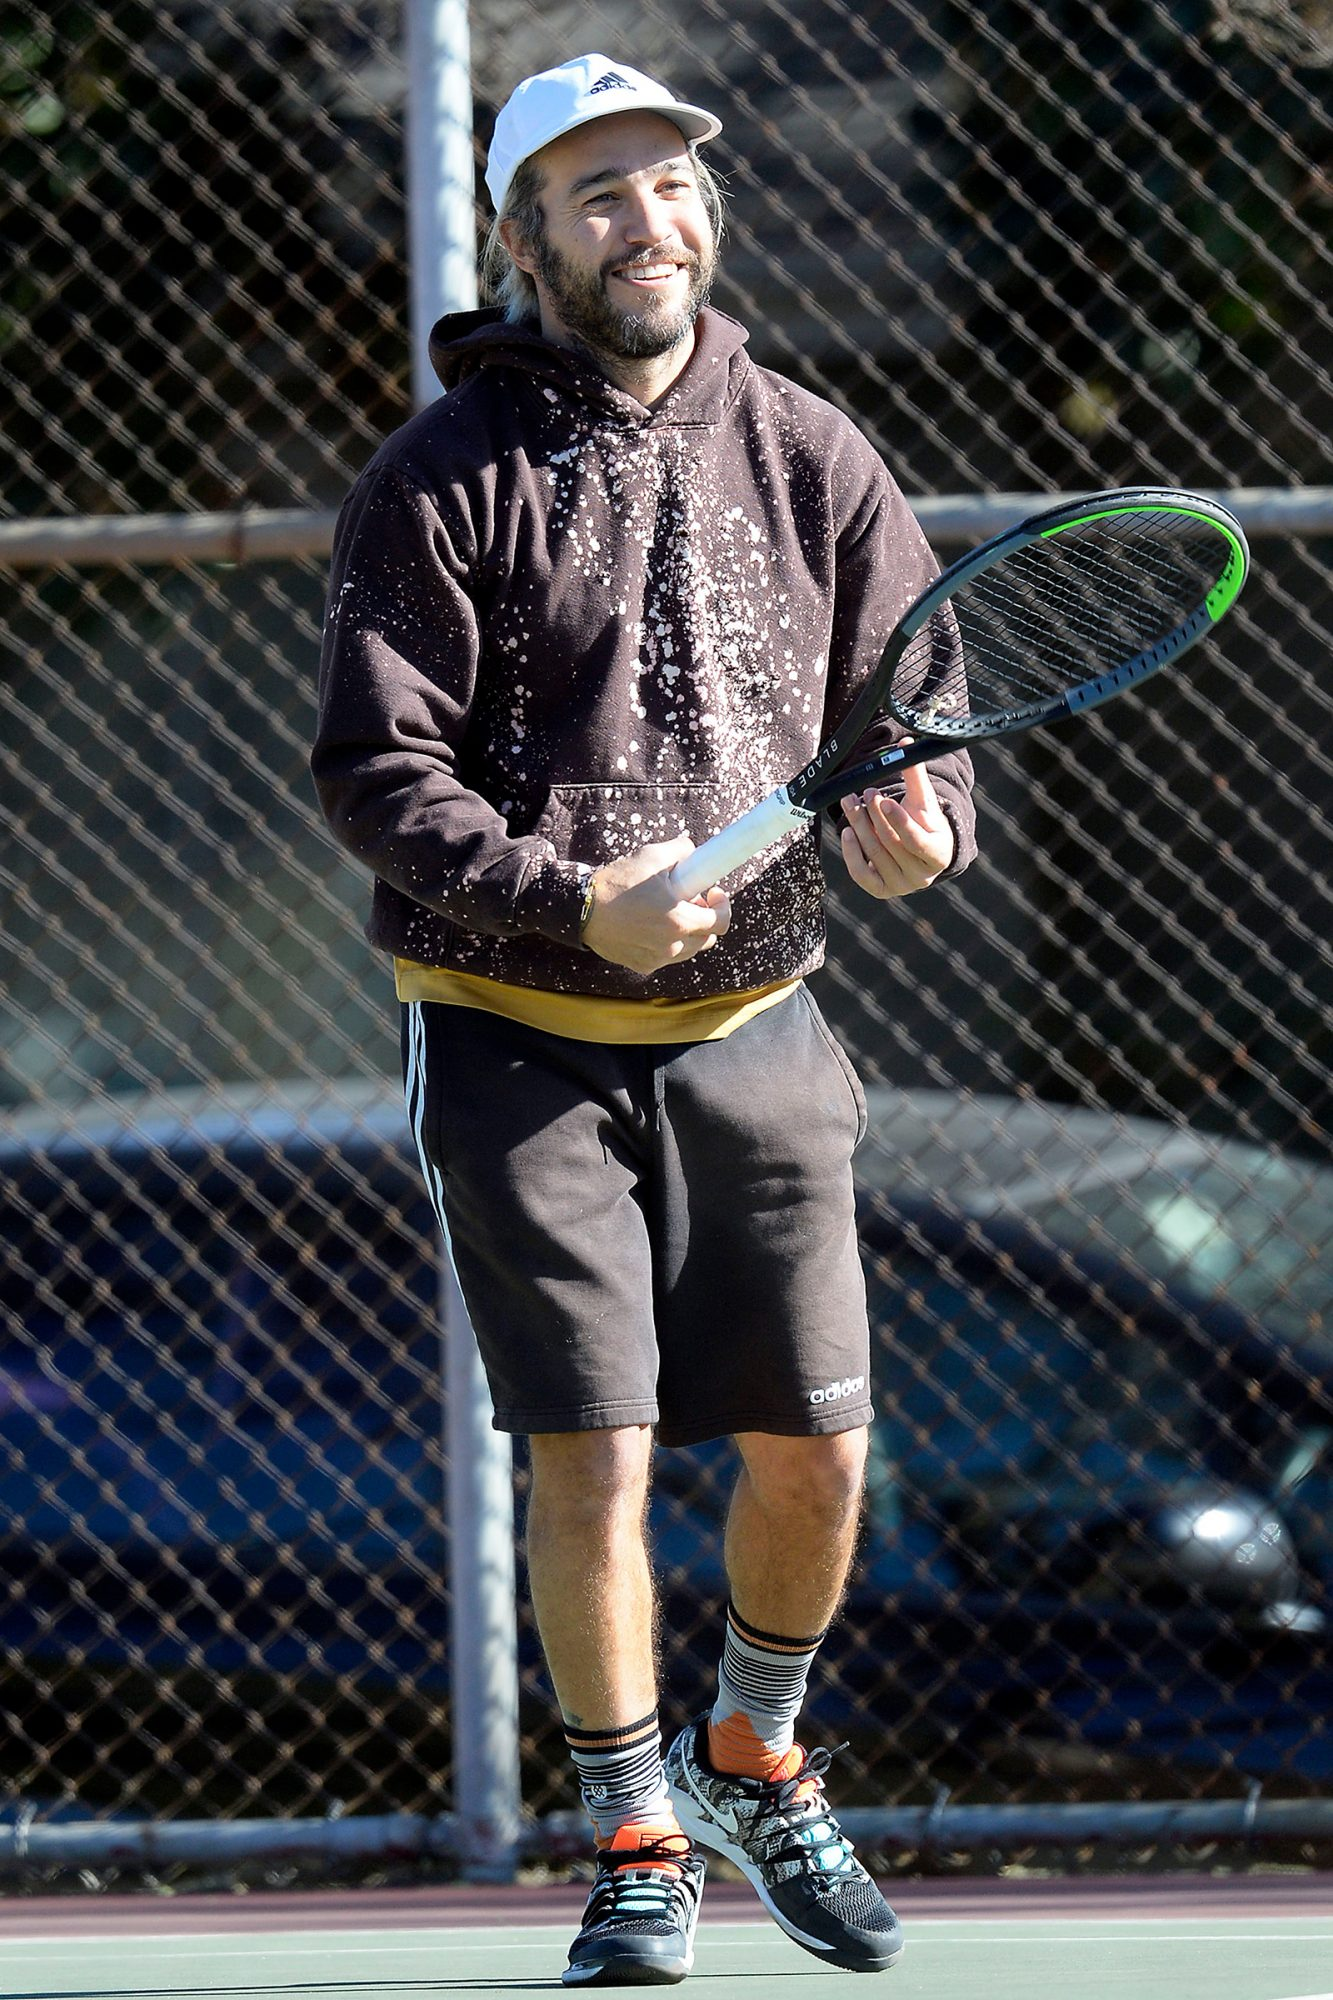 Pete Wentz plays tennis in Hollywood during new Covid lockdown order in L.A.